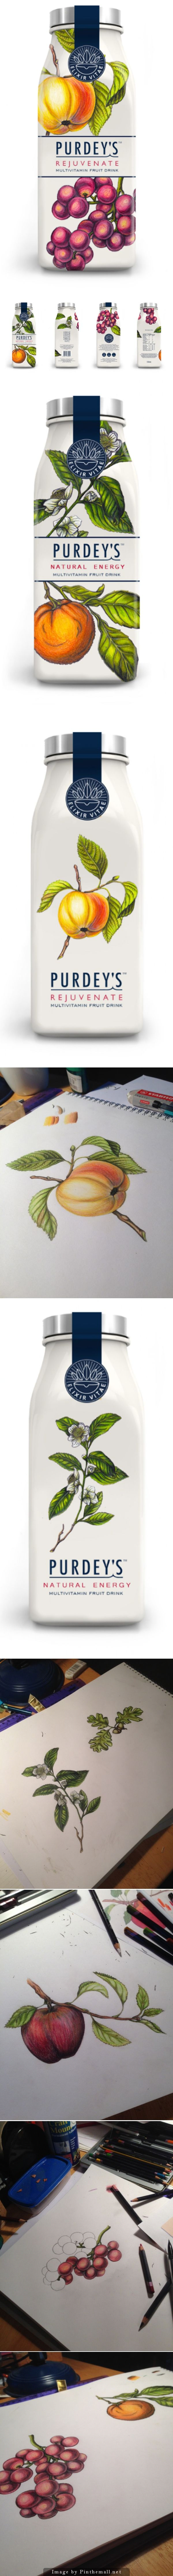 Purdey's (Concept) by Caitlin Walsh using actual fruit on bottle j20 were keen to explore